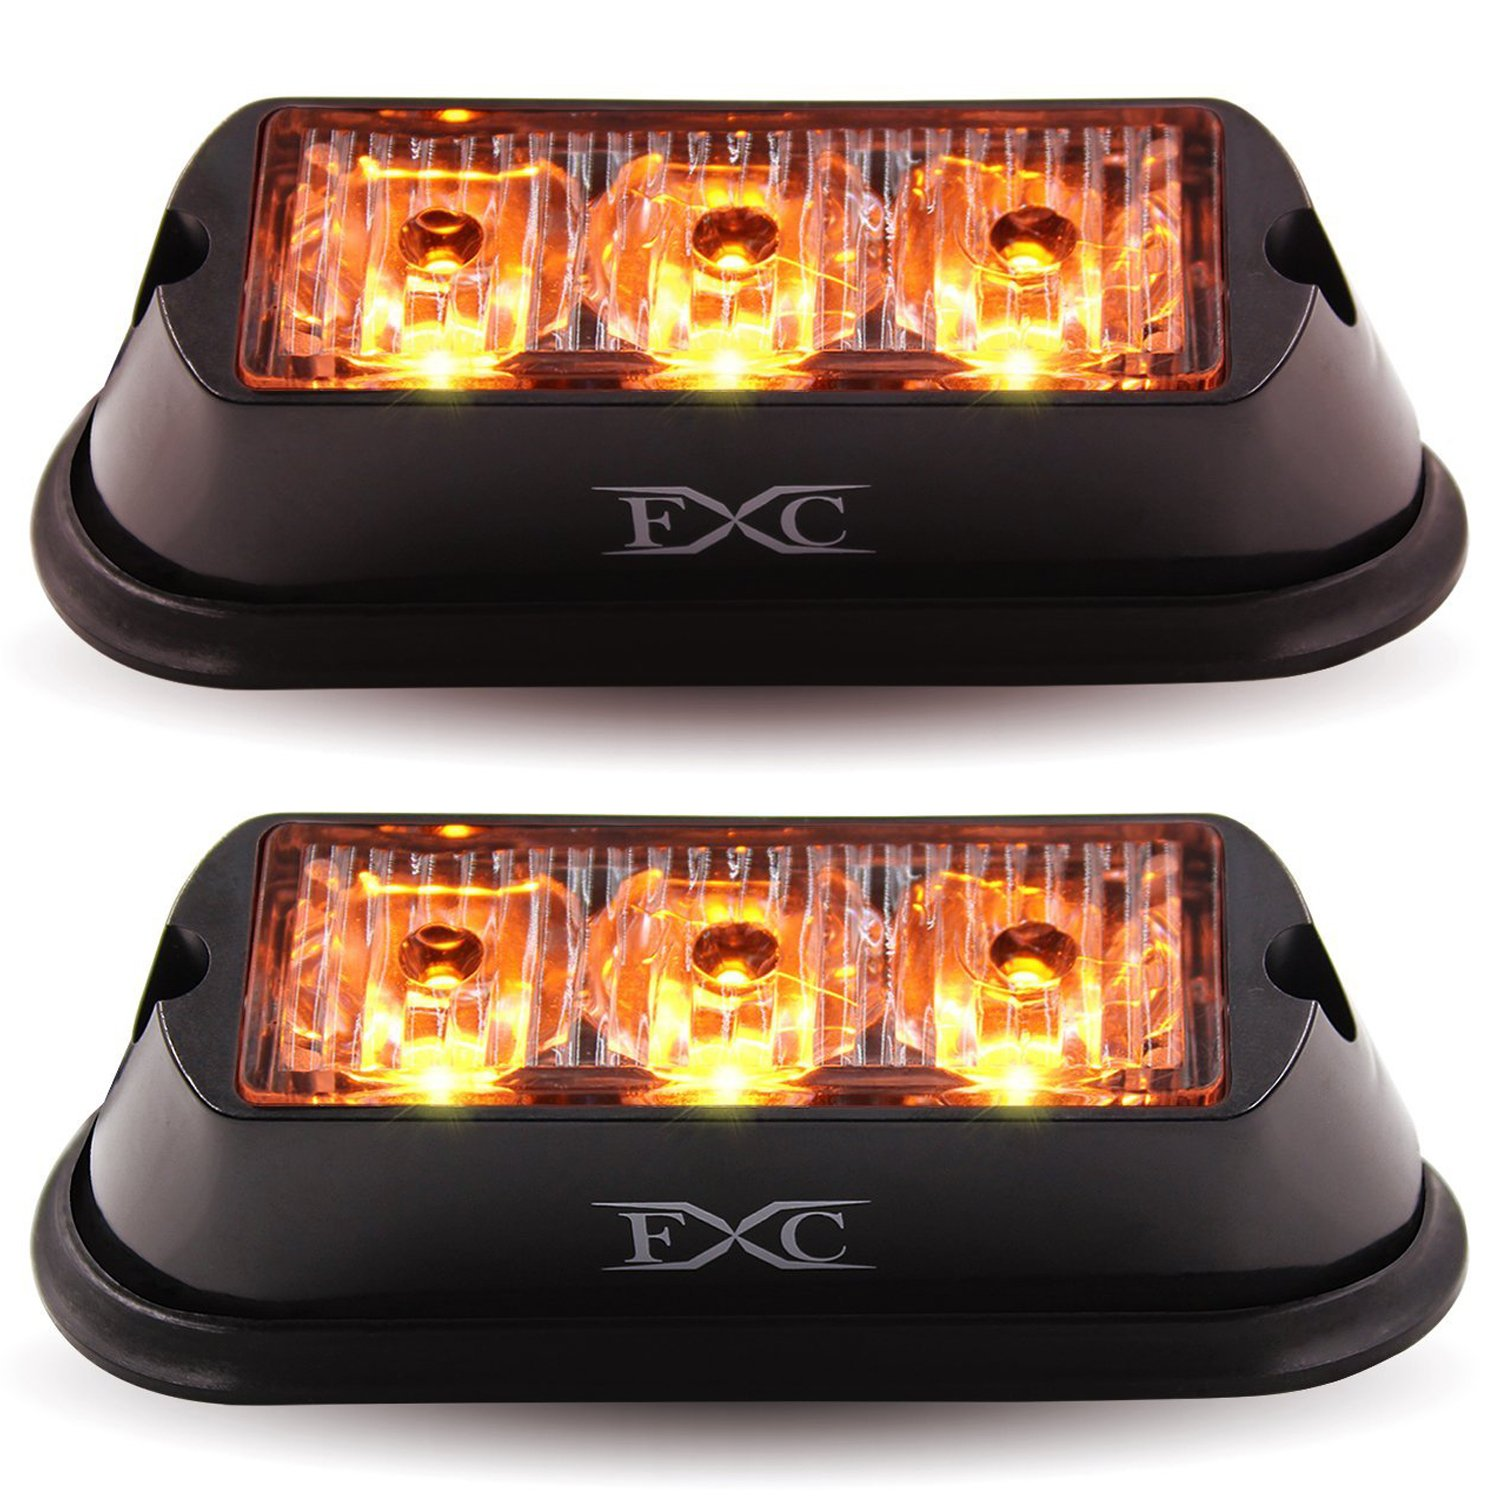 81hEmiUYd2L._SL1500_ amazon com warning lights warning & emergency lights automotive  at crackthecode.co